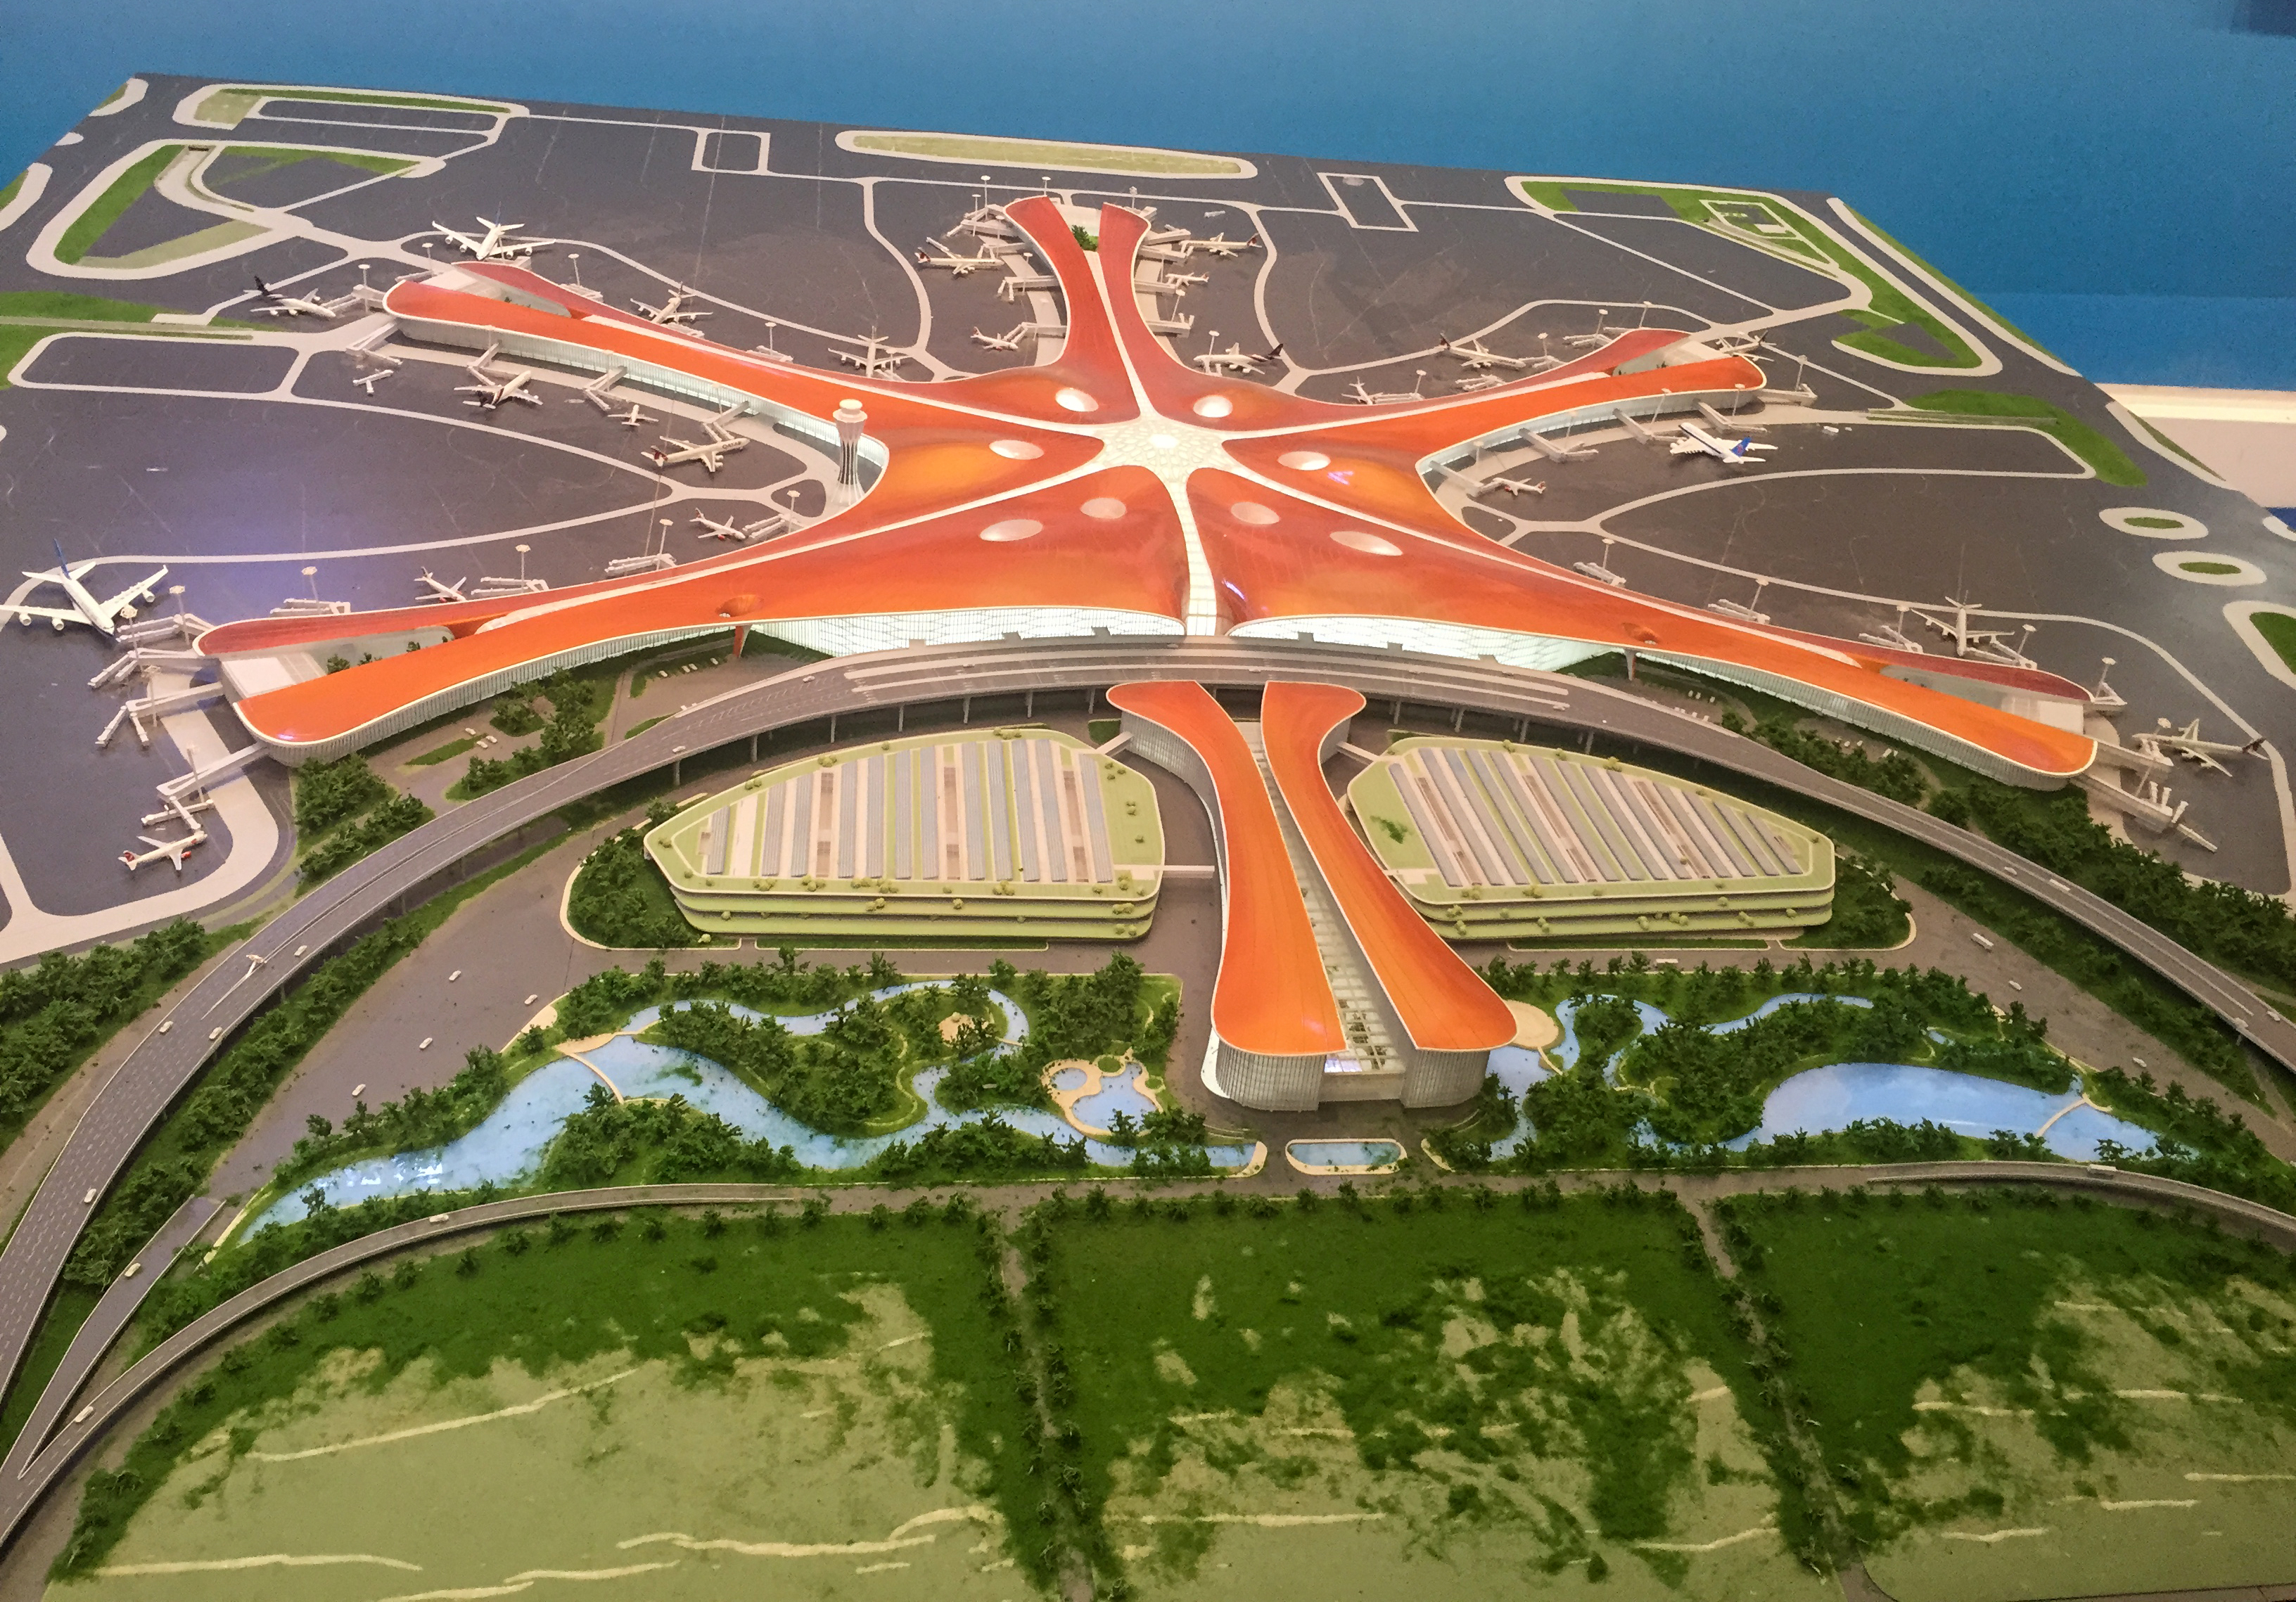 The biggest airport in the world was built in China